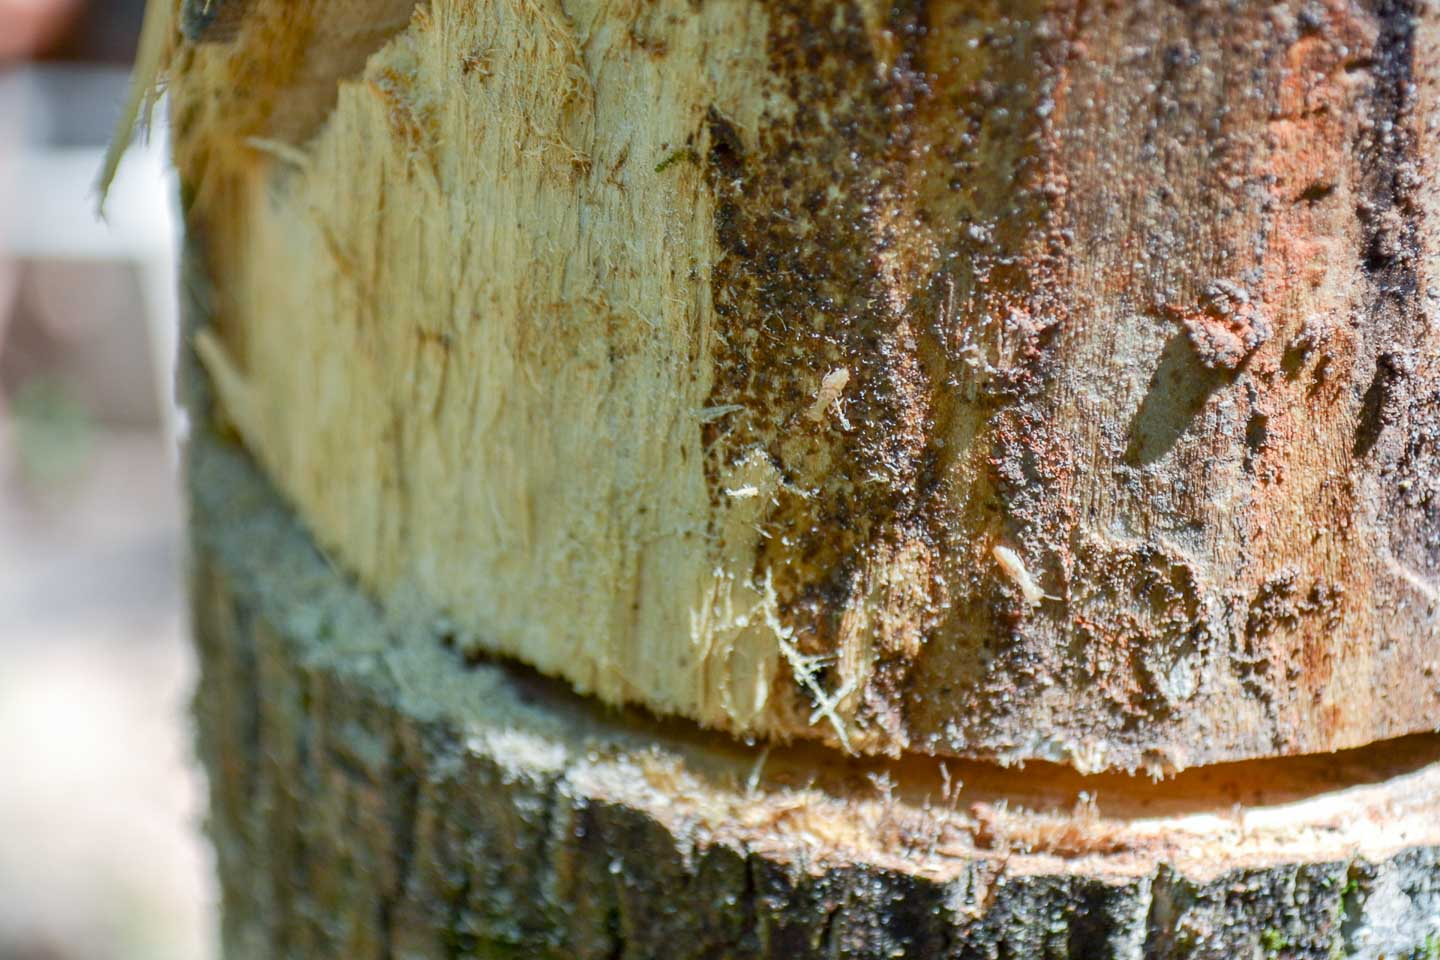 Artsy fartsy closeup of termites inhabiting tree Im cutting down